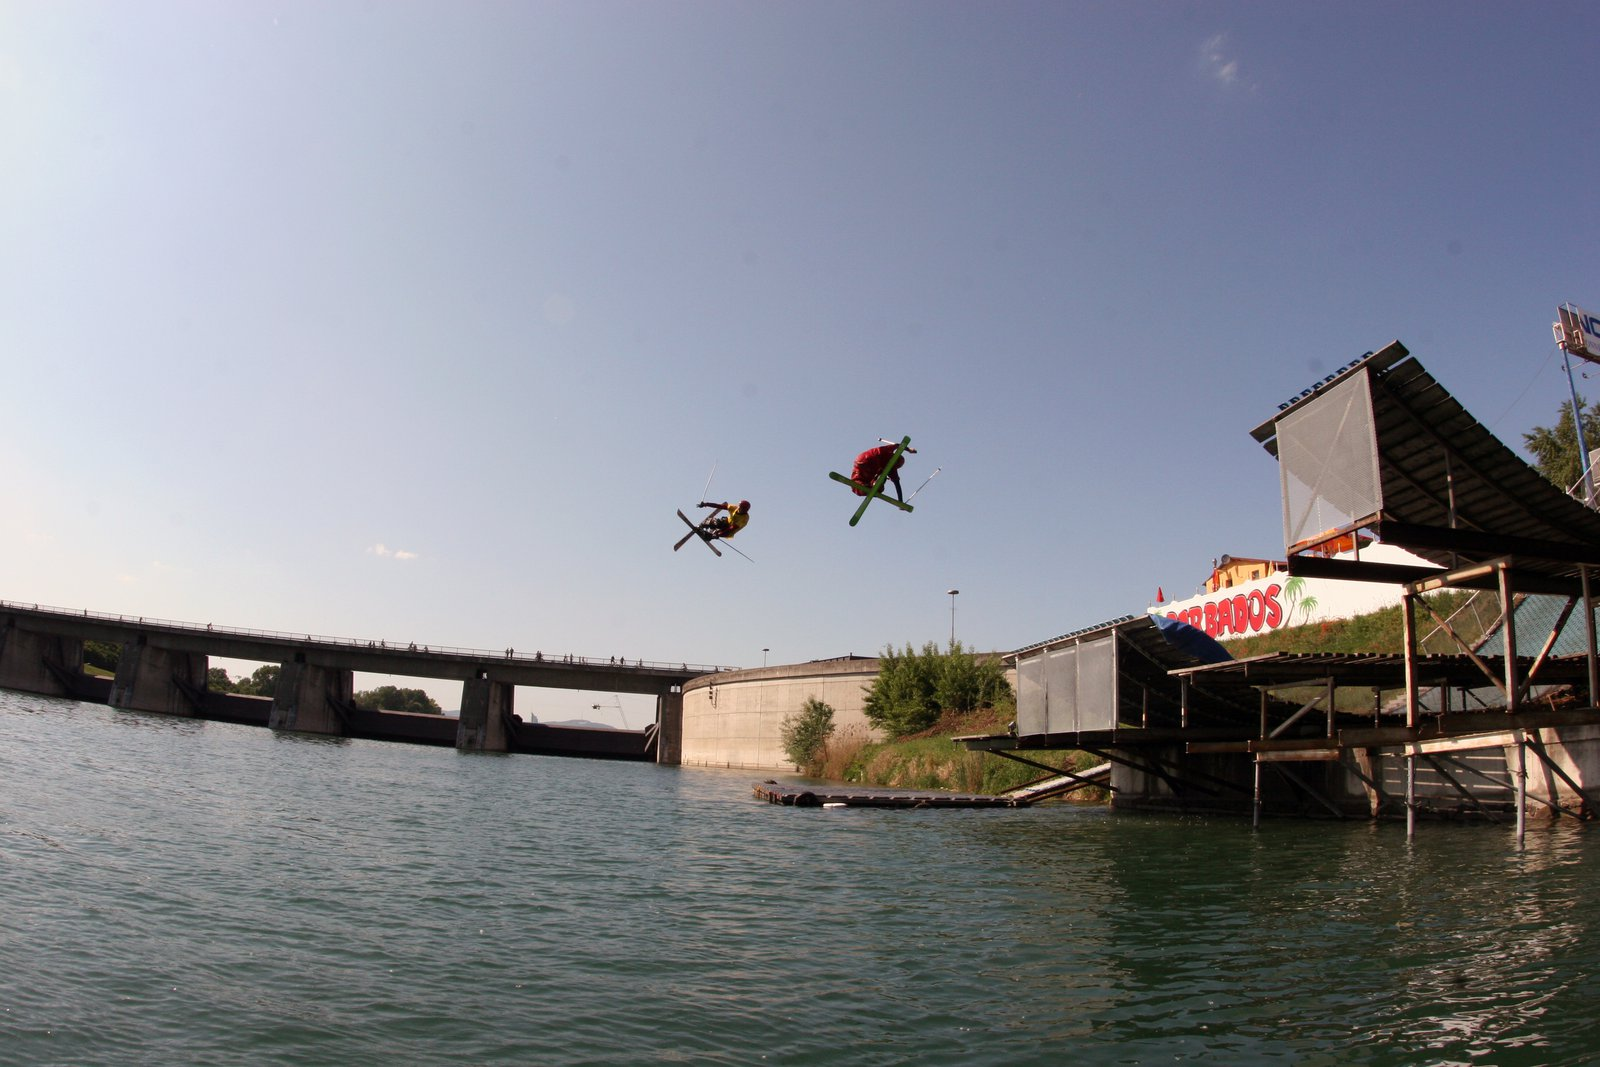 Waterramp Vienna - double the fun